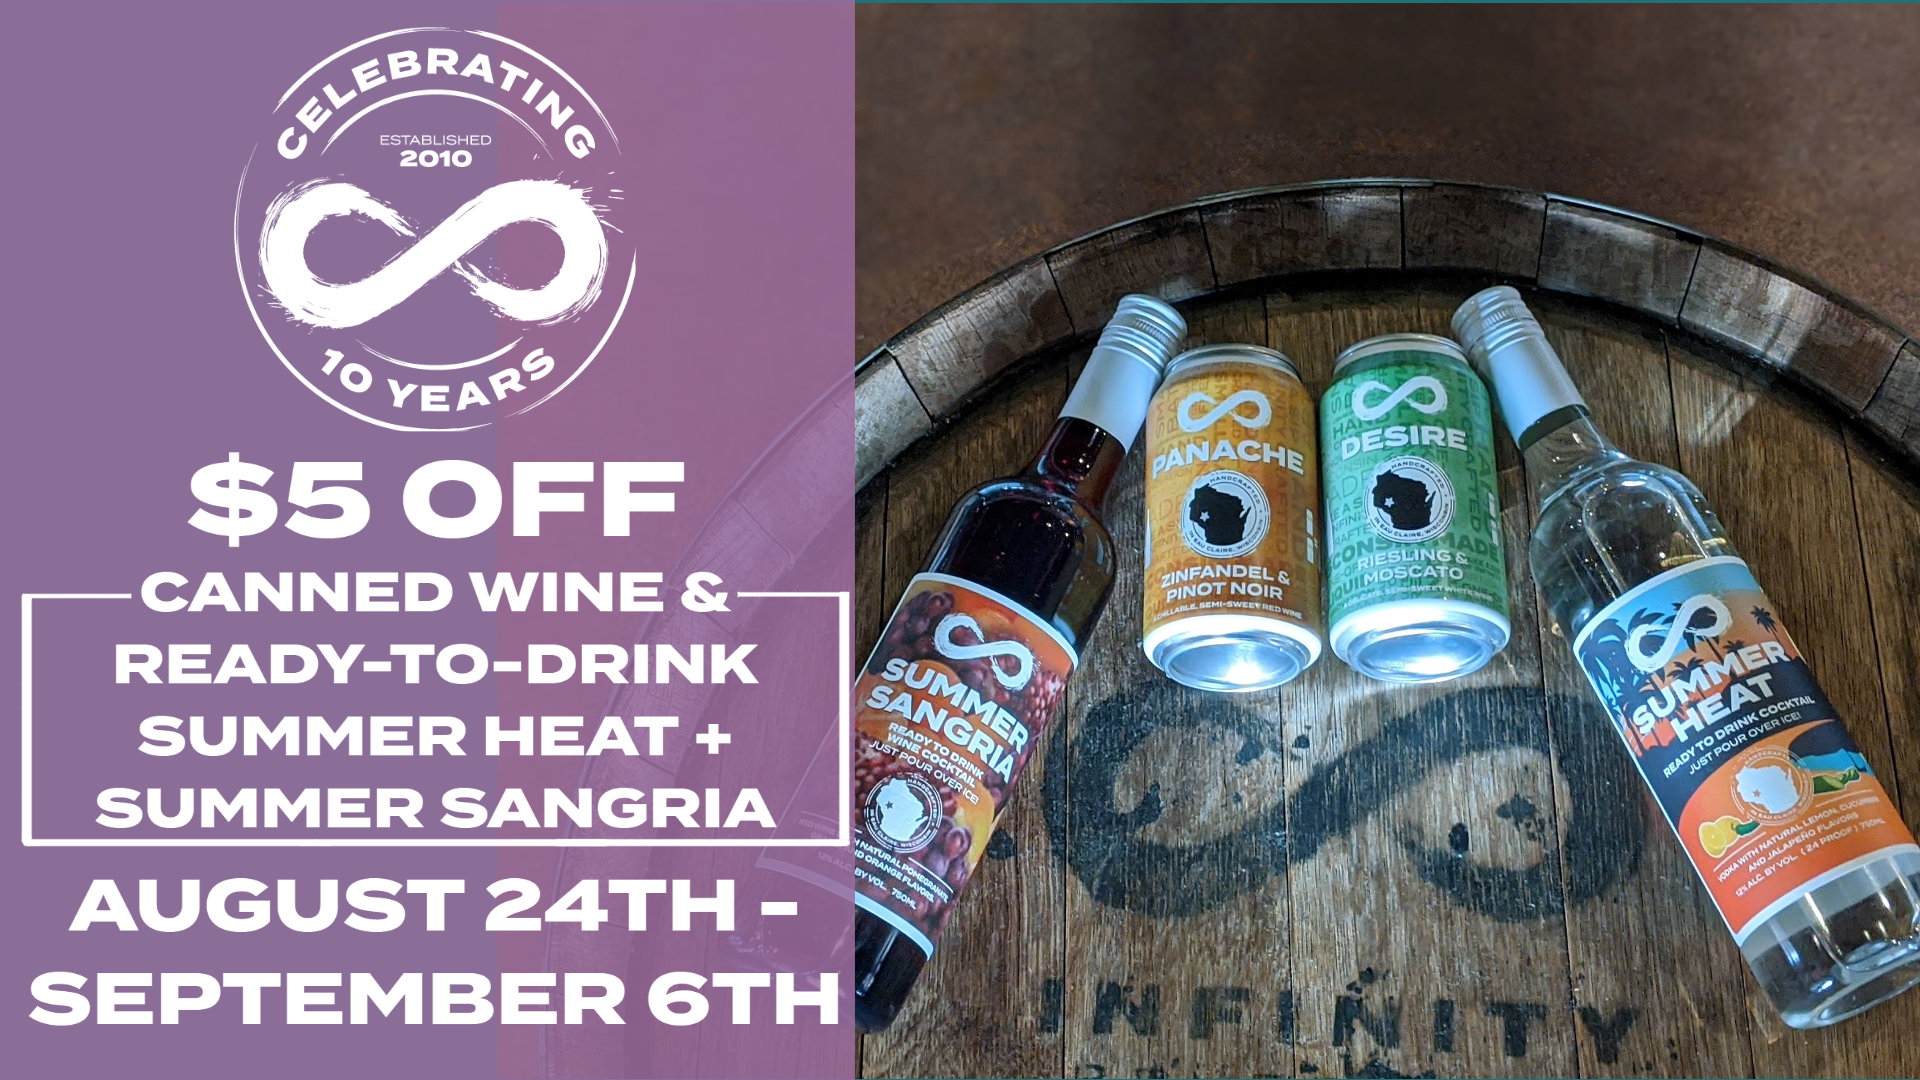 $5 OFF CANNED WINE & READY-TO-DRINK SUMMER HEAT + SUMMER SANGRIA